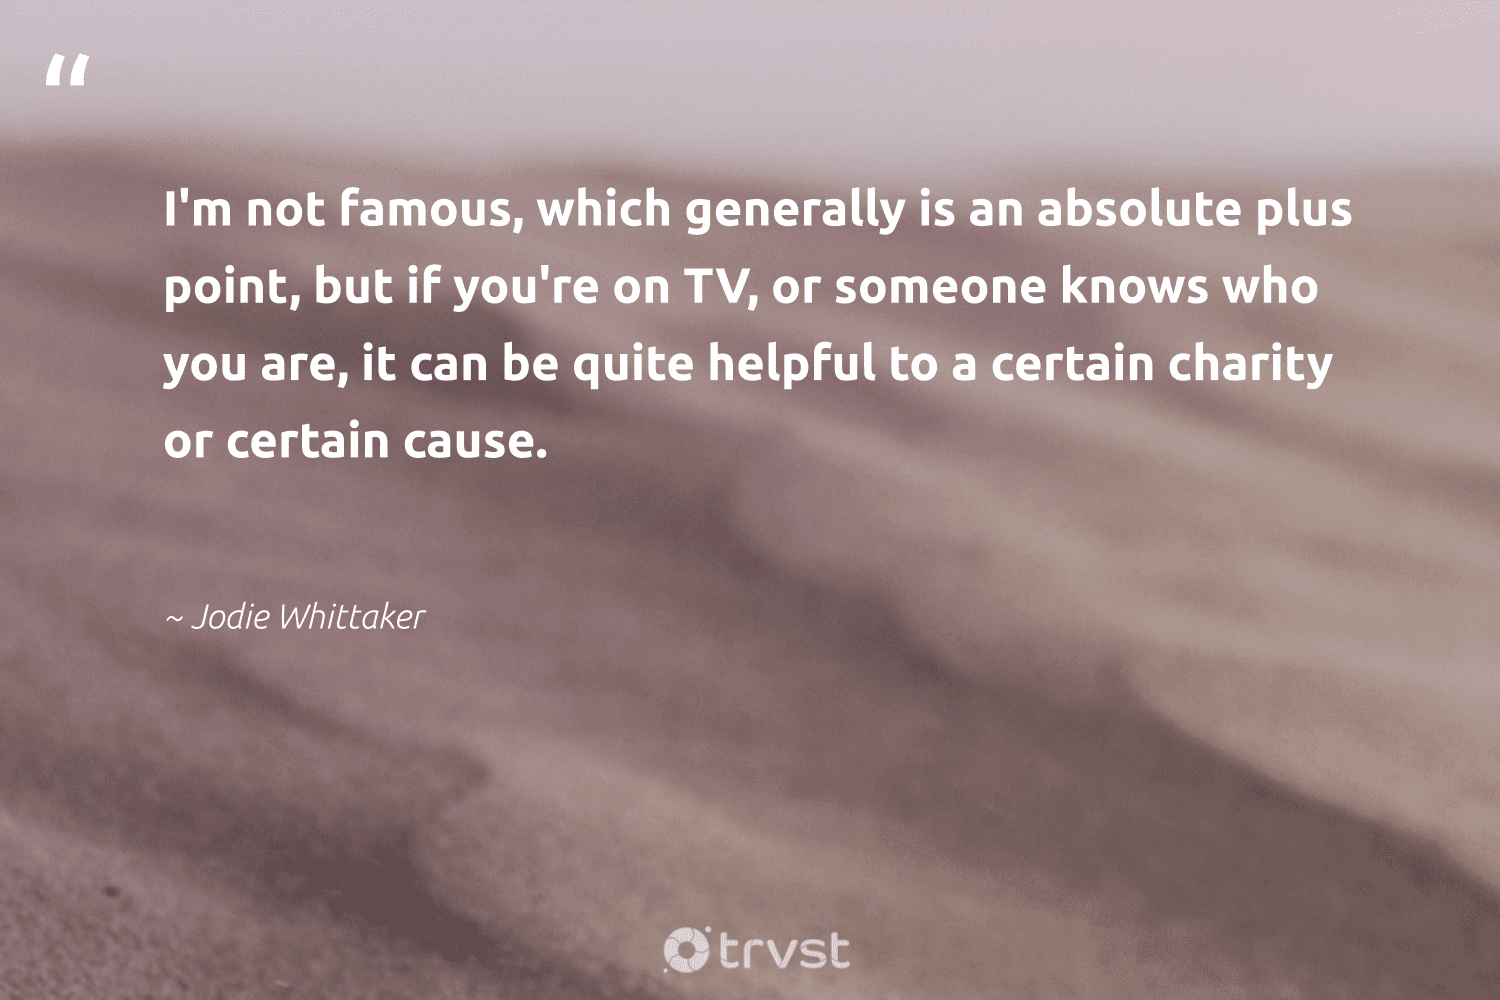 """""""I'm not famous, which generally is an absolute plus point, but if you're on TV, or someone knows who you are, it can be quite helpful to a certain charity or certain cause.""""  - Jodie Whittaker #trvst #quotes #Charity #cause #fundraising #equalopportunity #communities #bethechange #nonprofitorganization #society #weareallone #changetheworld"""